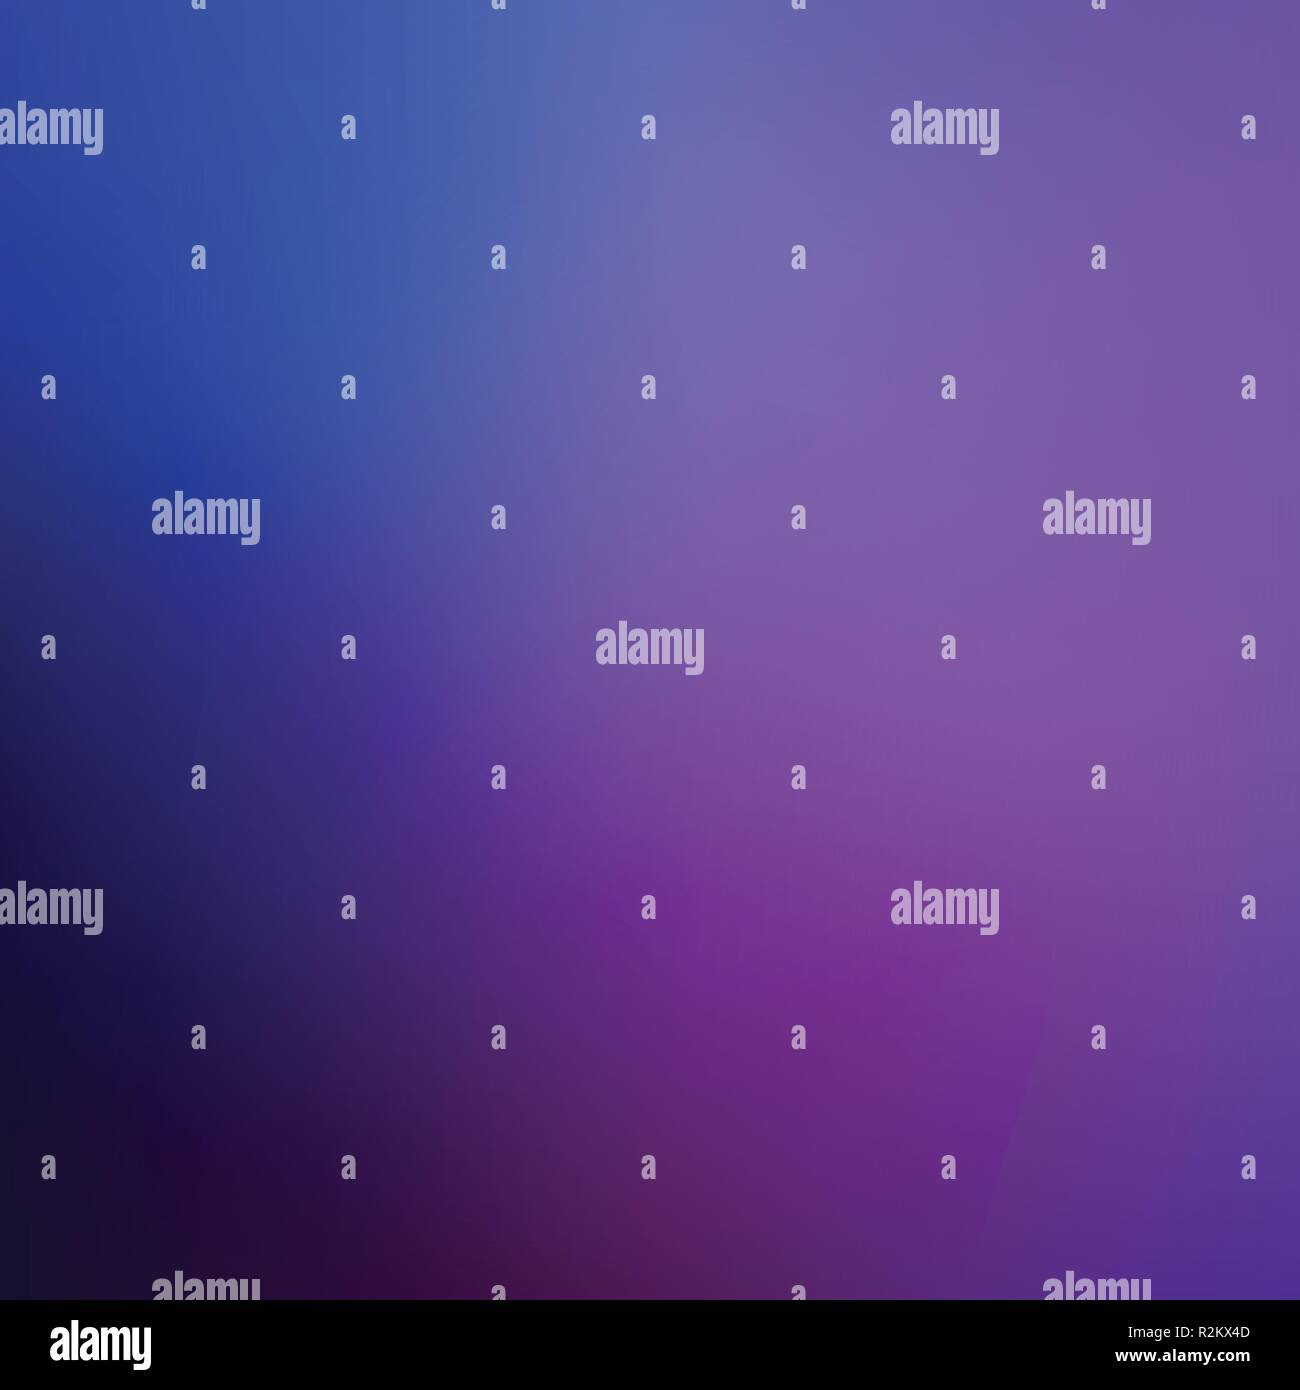 Vector Abstract Dark Blue Purple Blurred Background Smooth